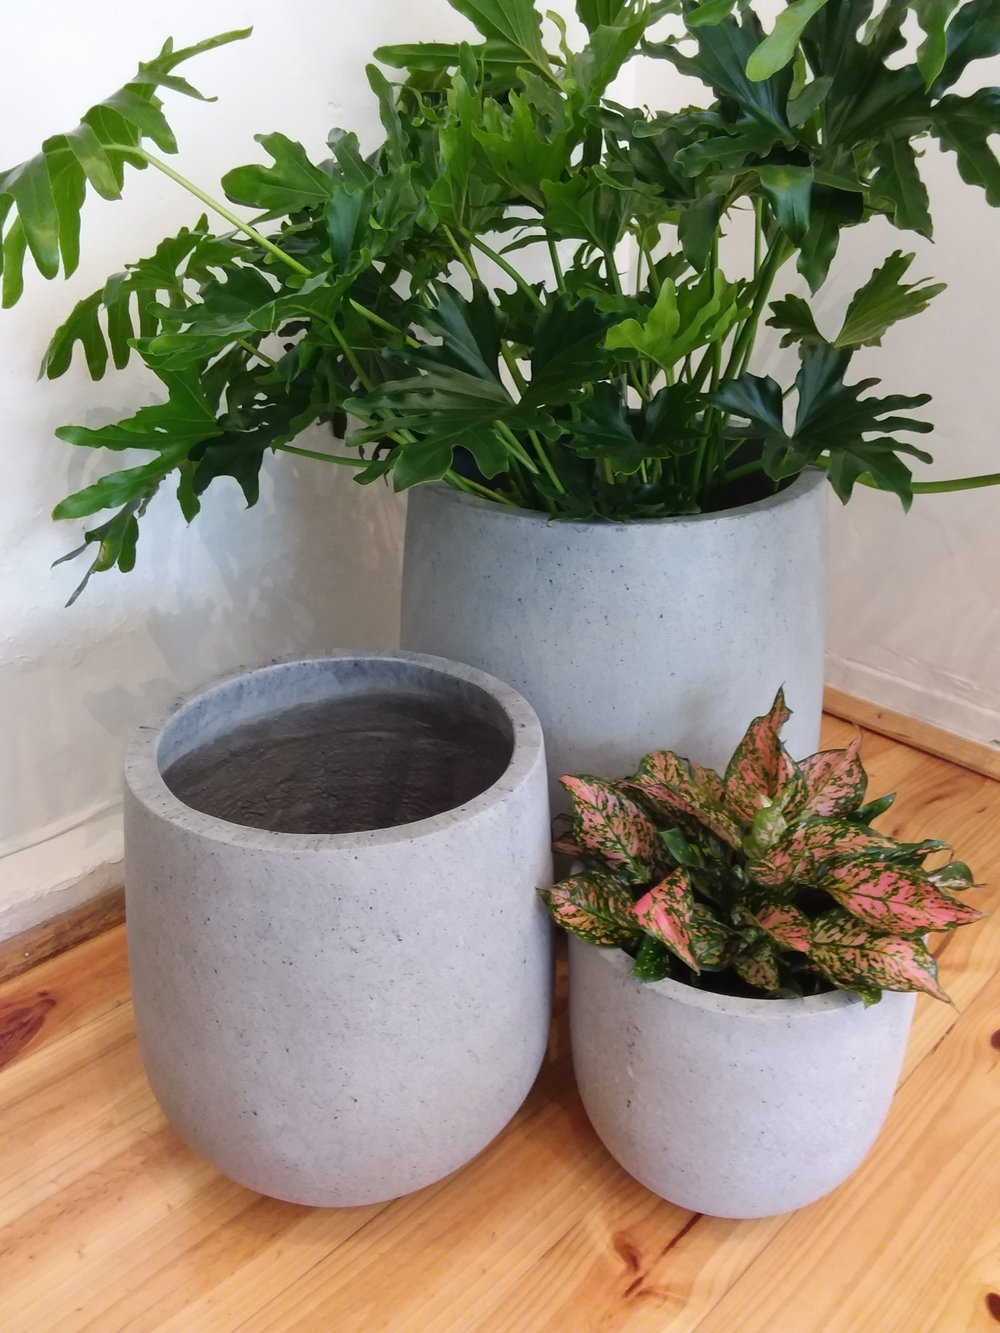 Concrete Tulip Pots  Colour Choices: Concrete or White  Medium (280mm W x 300mm H) $110.00  Large (380mm W x 425mm H) $145.00  E Large (500mm W x 550mm H) $220.00